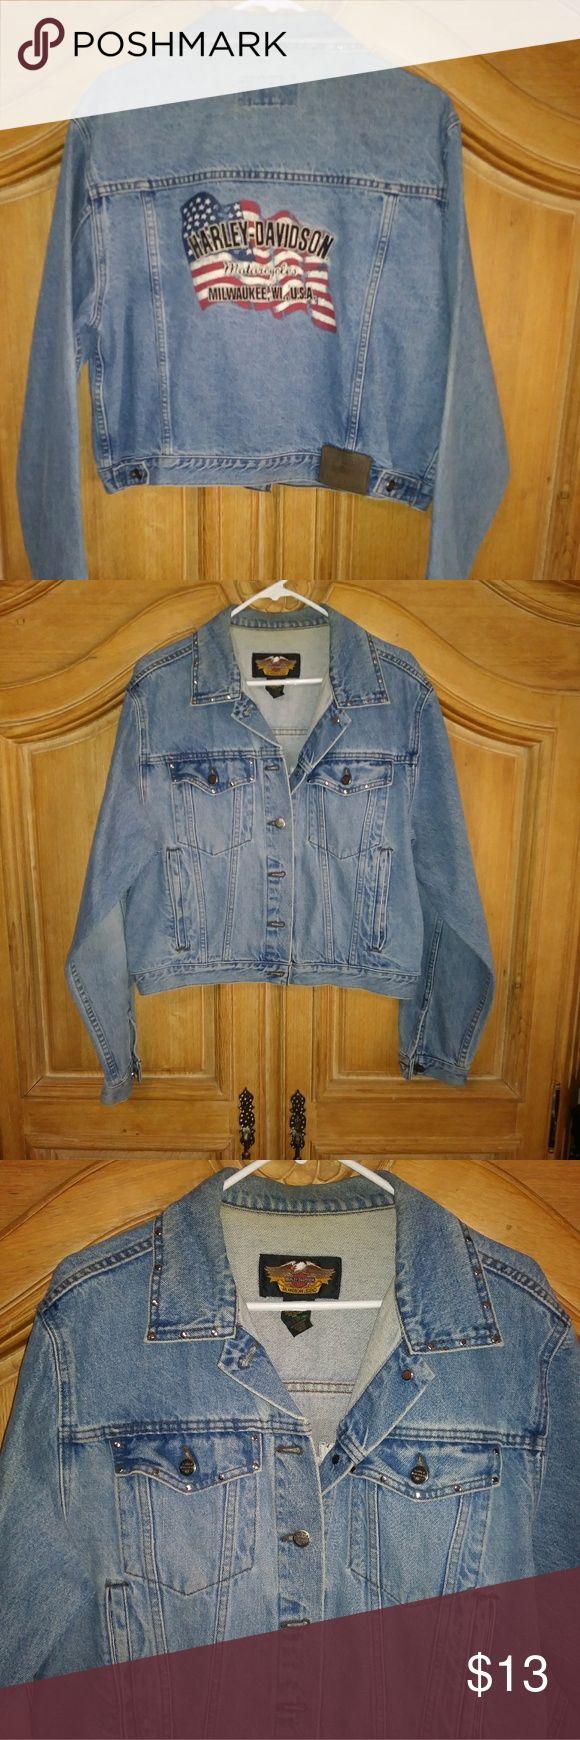 Harley-Davidson Blue Jean Jacket XL American Flag Harley-Davidson Jean Jacket Flag on back with Milwaukee WI and silver details Size XLarge Fabric Cotton Color Blue  Waist 44 Hips 40 Wrist 9 Pockets 2 button front, 2 waist Pockets, 2 inside pockets Harley-Davidson Jackets & Coats Jean Jackets